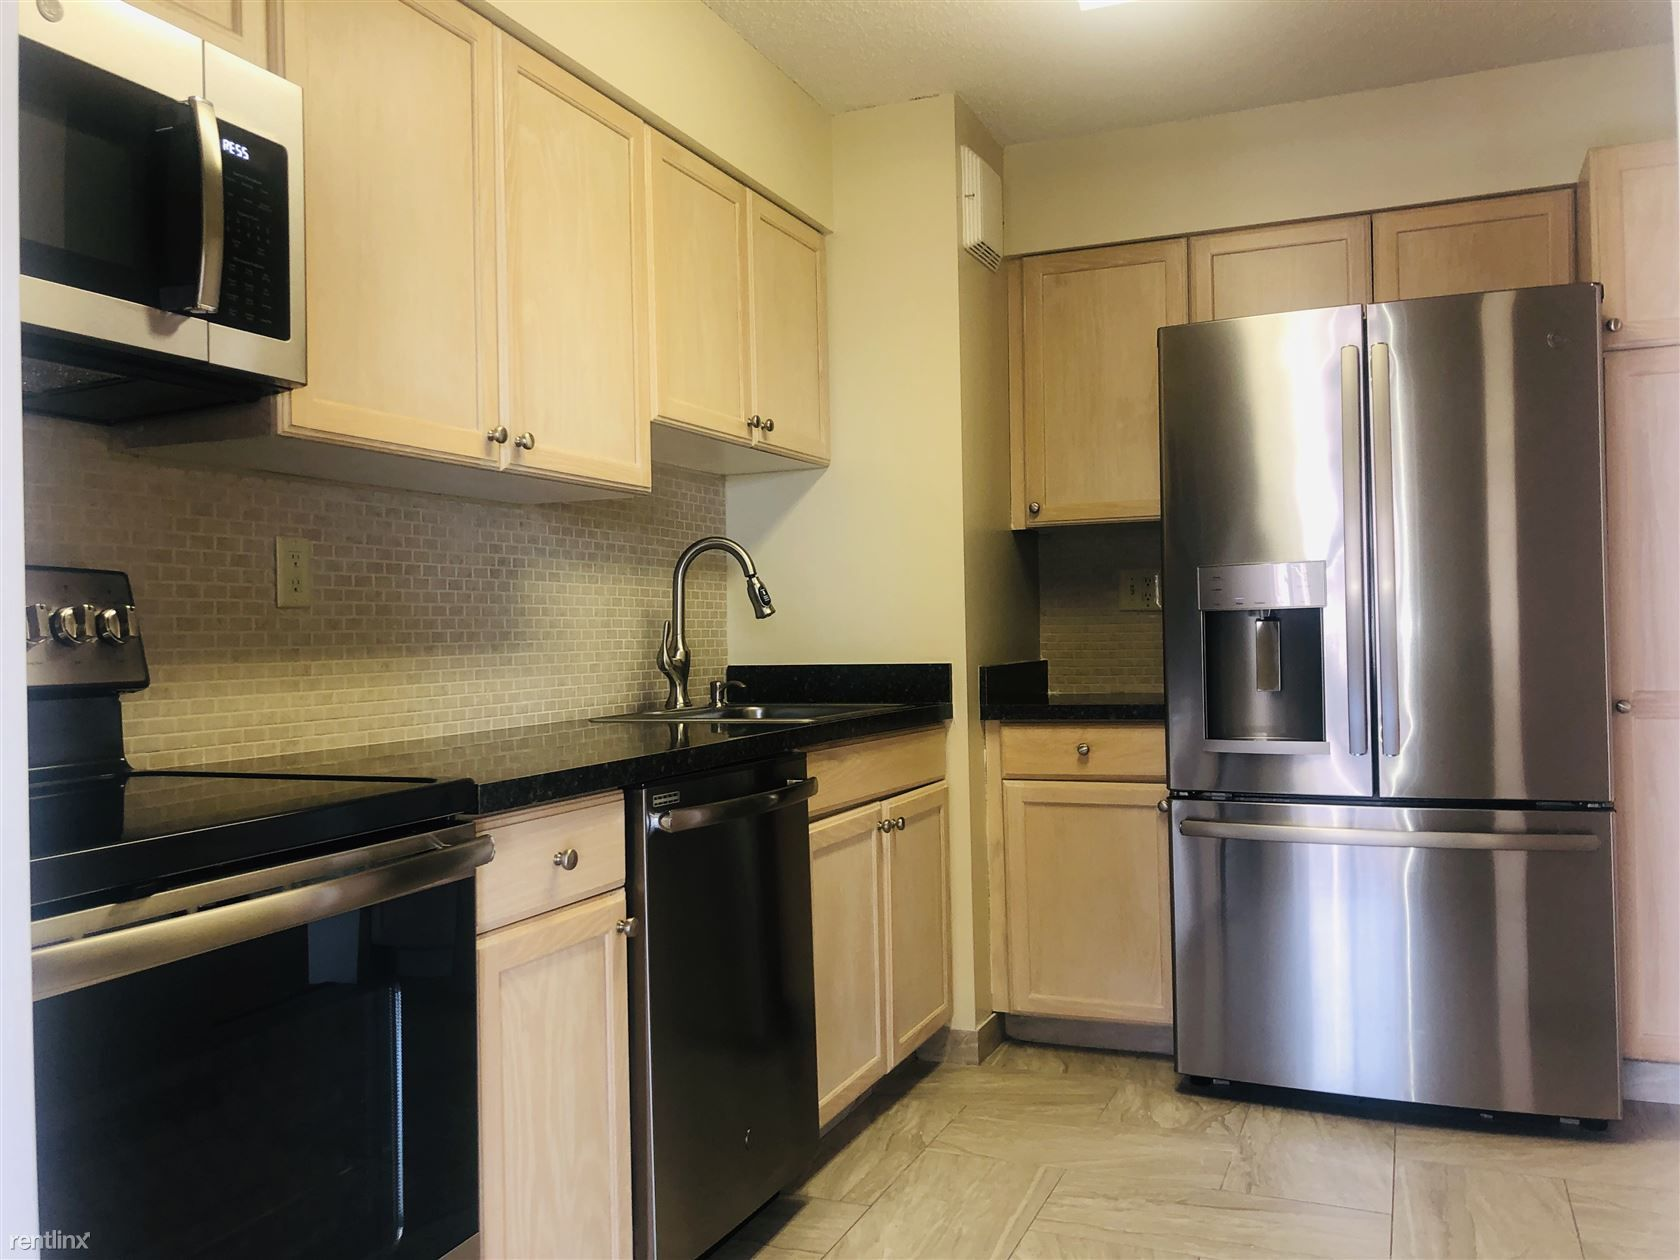 The Excelsior II Luxury Apartments photo